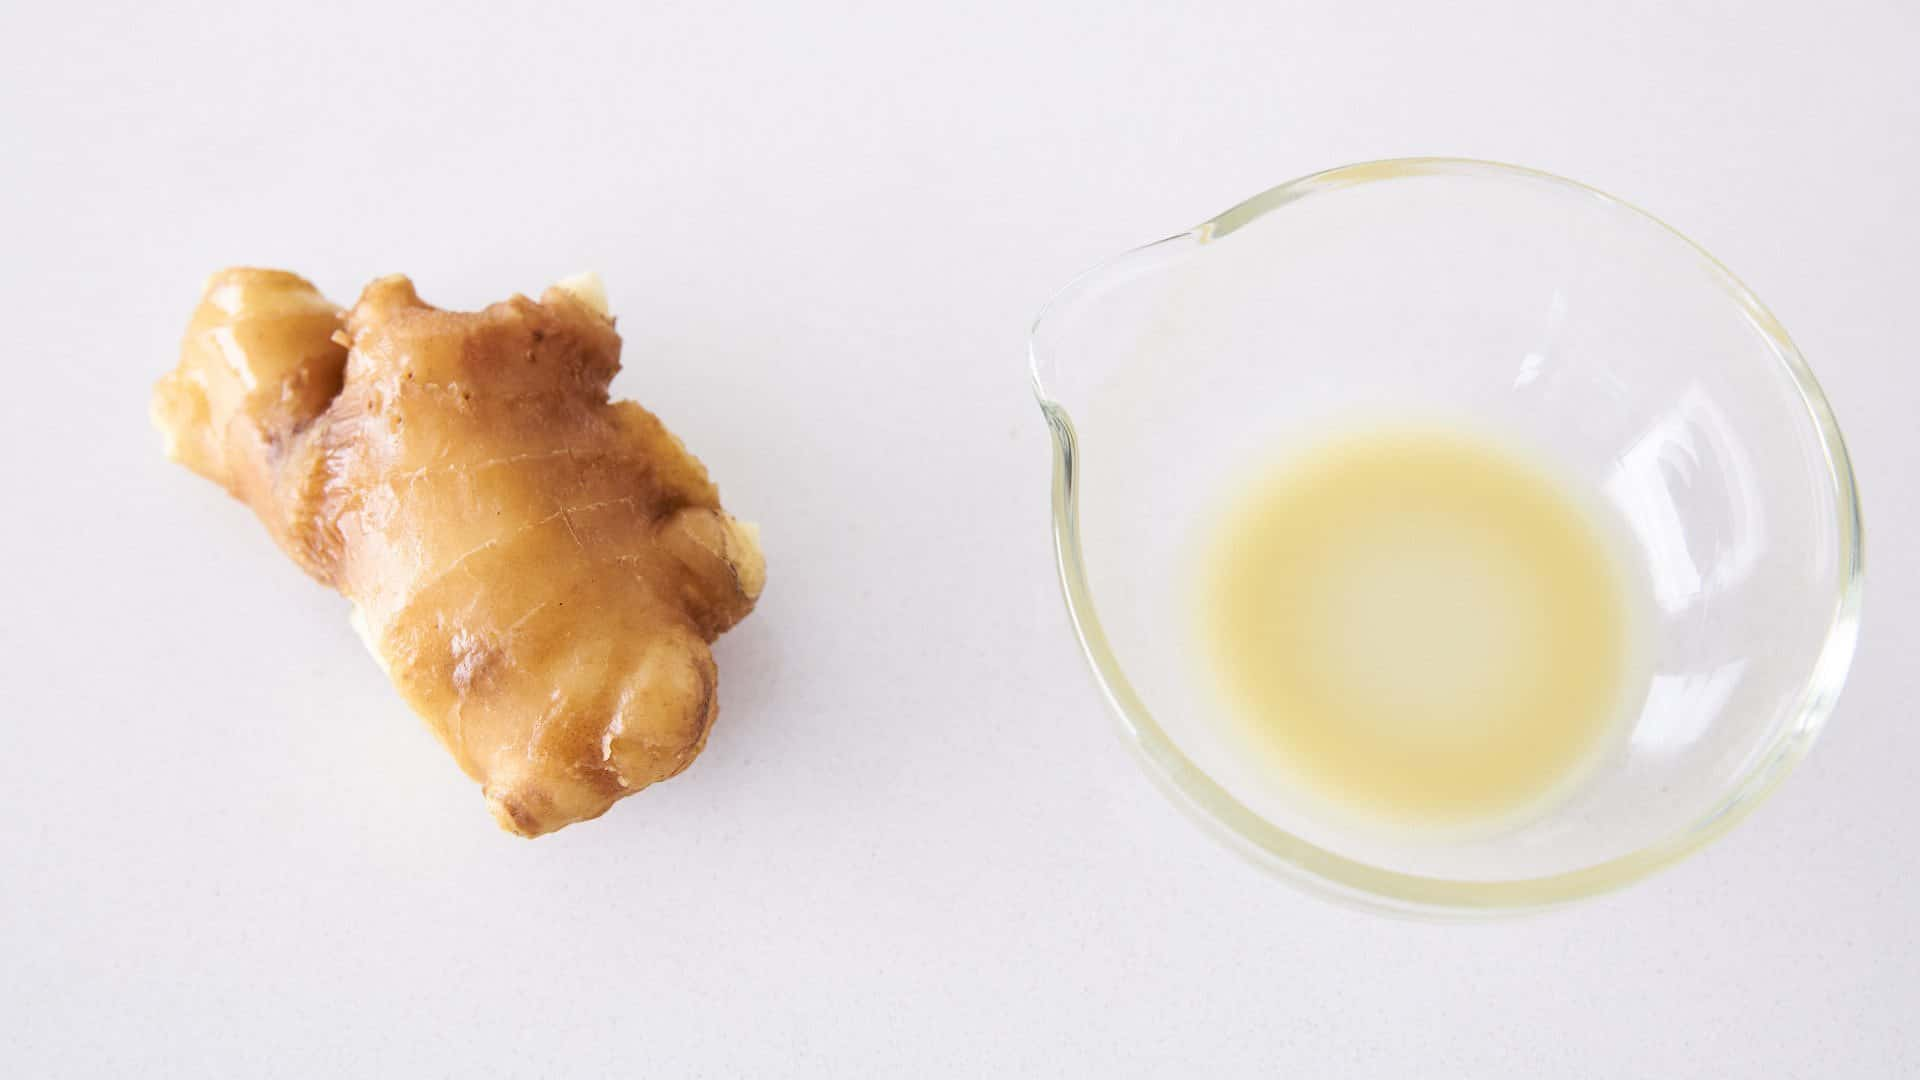 You can grate fresh ginger and pass it through a strainer to make ginger juice.